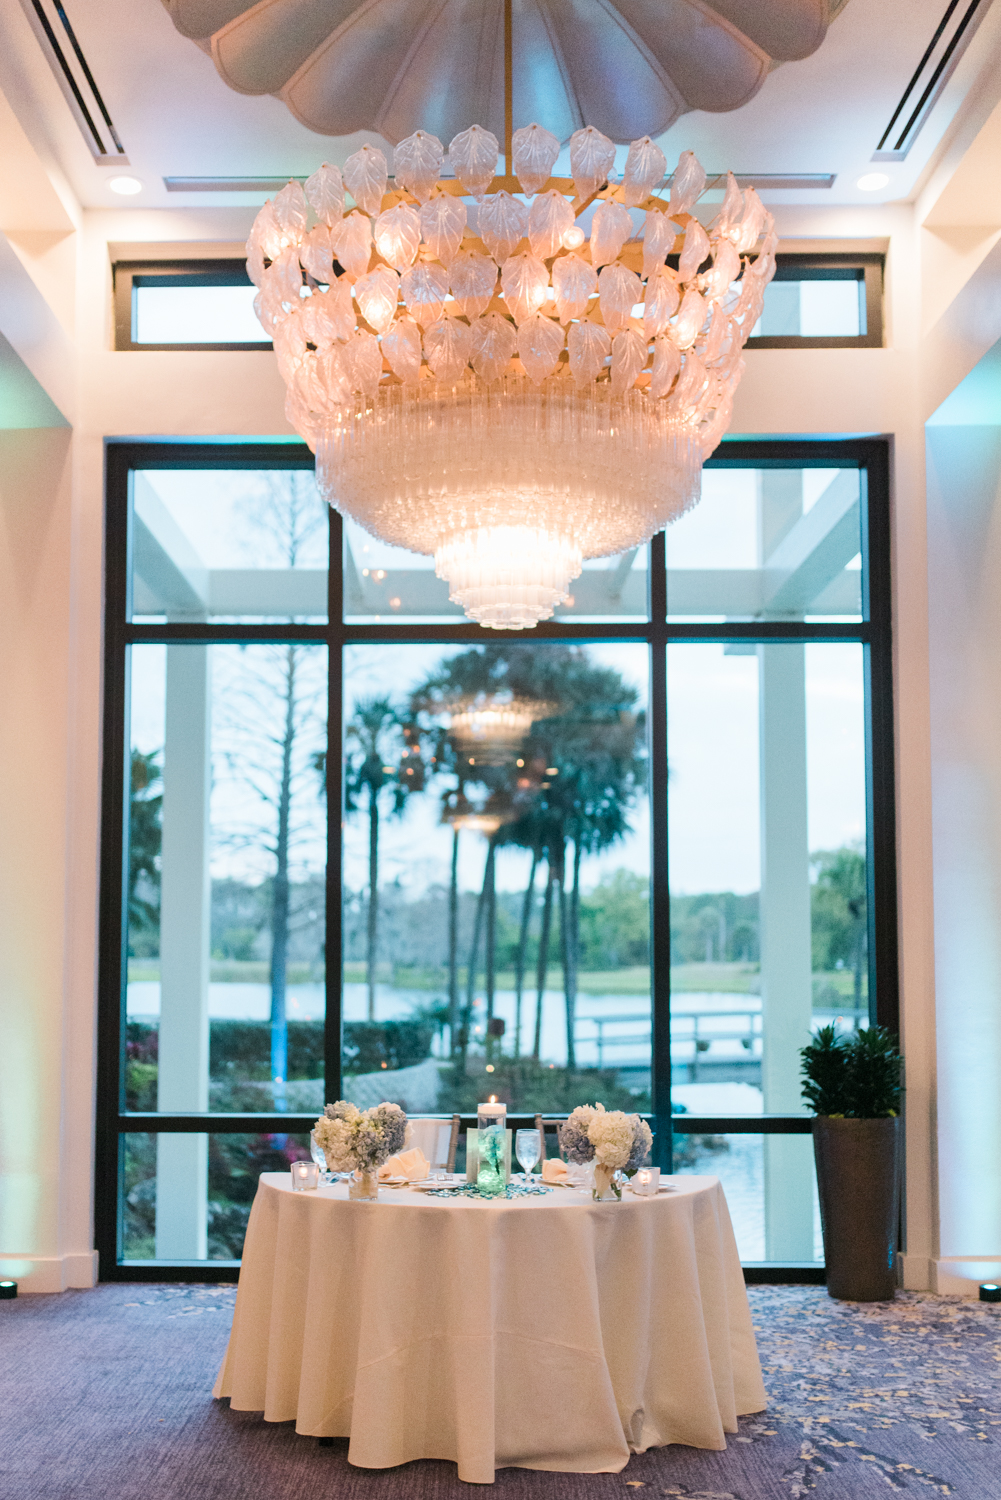 hyatt grand cypress wedding rania marie photography-21.jpg